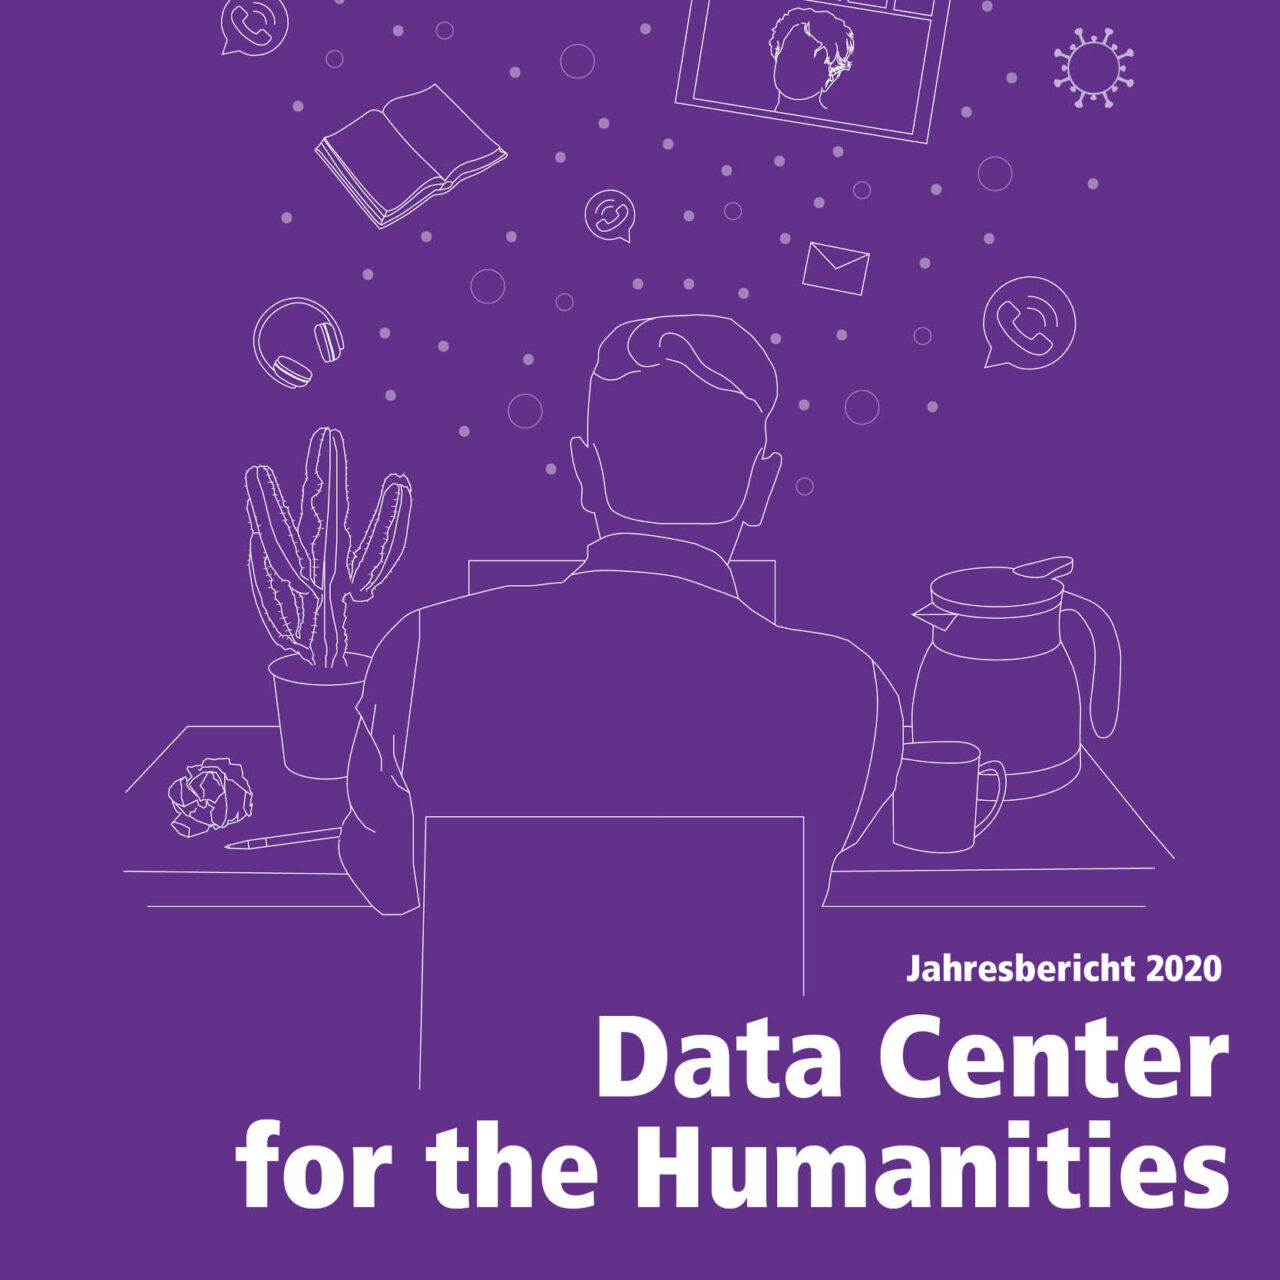 purple design of the annual report of the DCH